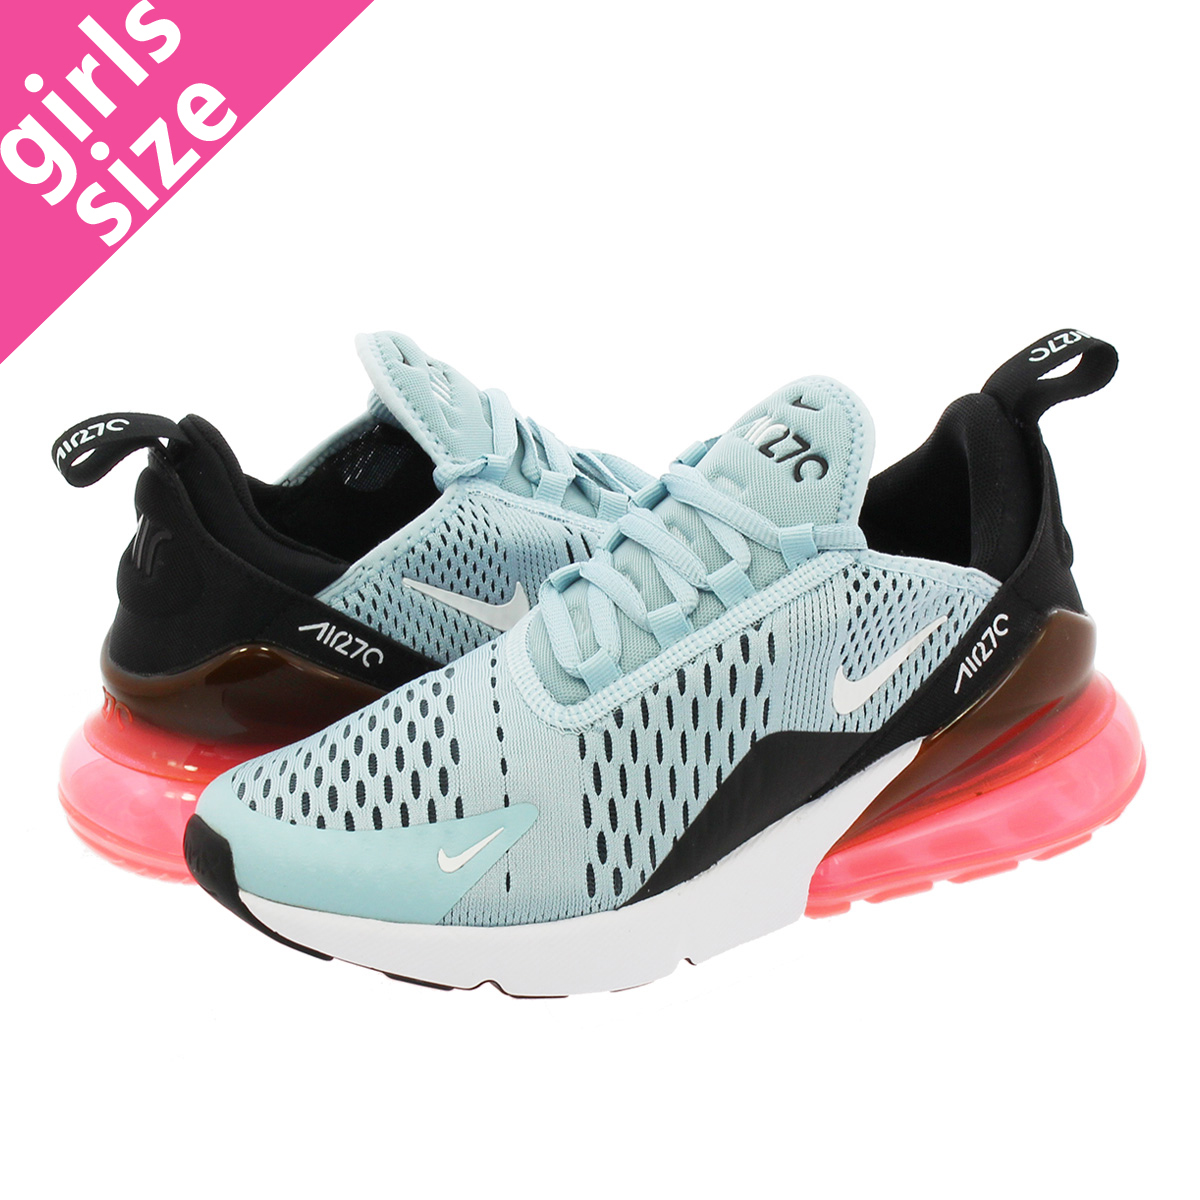 5b427f131a16 LOWTEX BIG-SMALL SHOP  NIKE WMNS AIR MAX 270 Nike women Air Max 270 OCEAN  BLISS WHITE BLACK HOT PUNCH ah6789-400